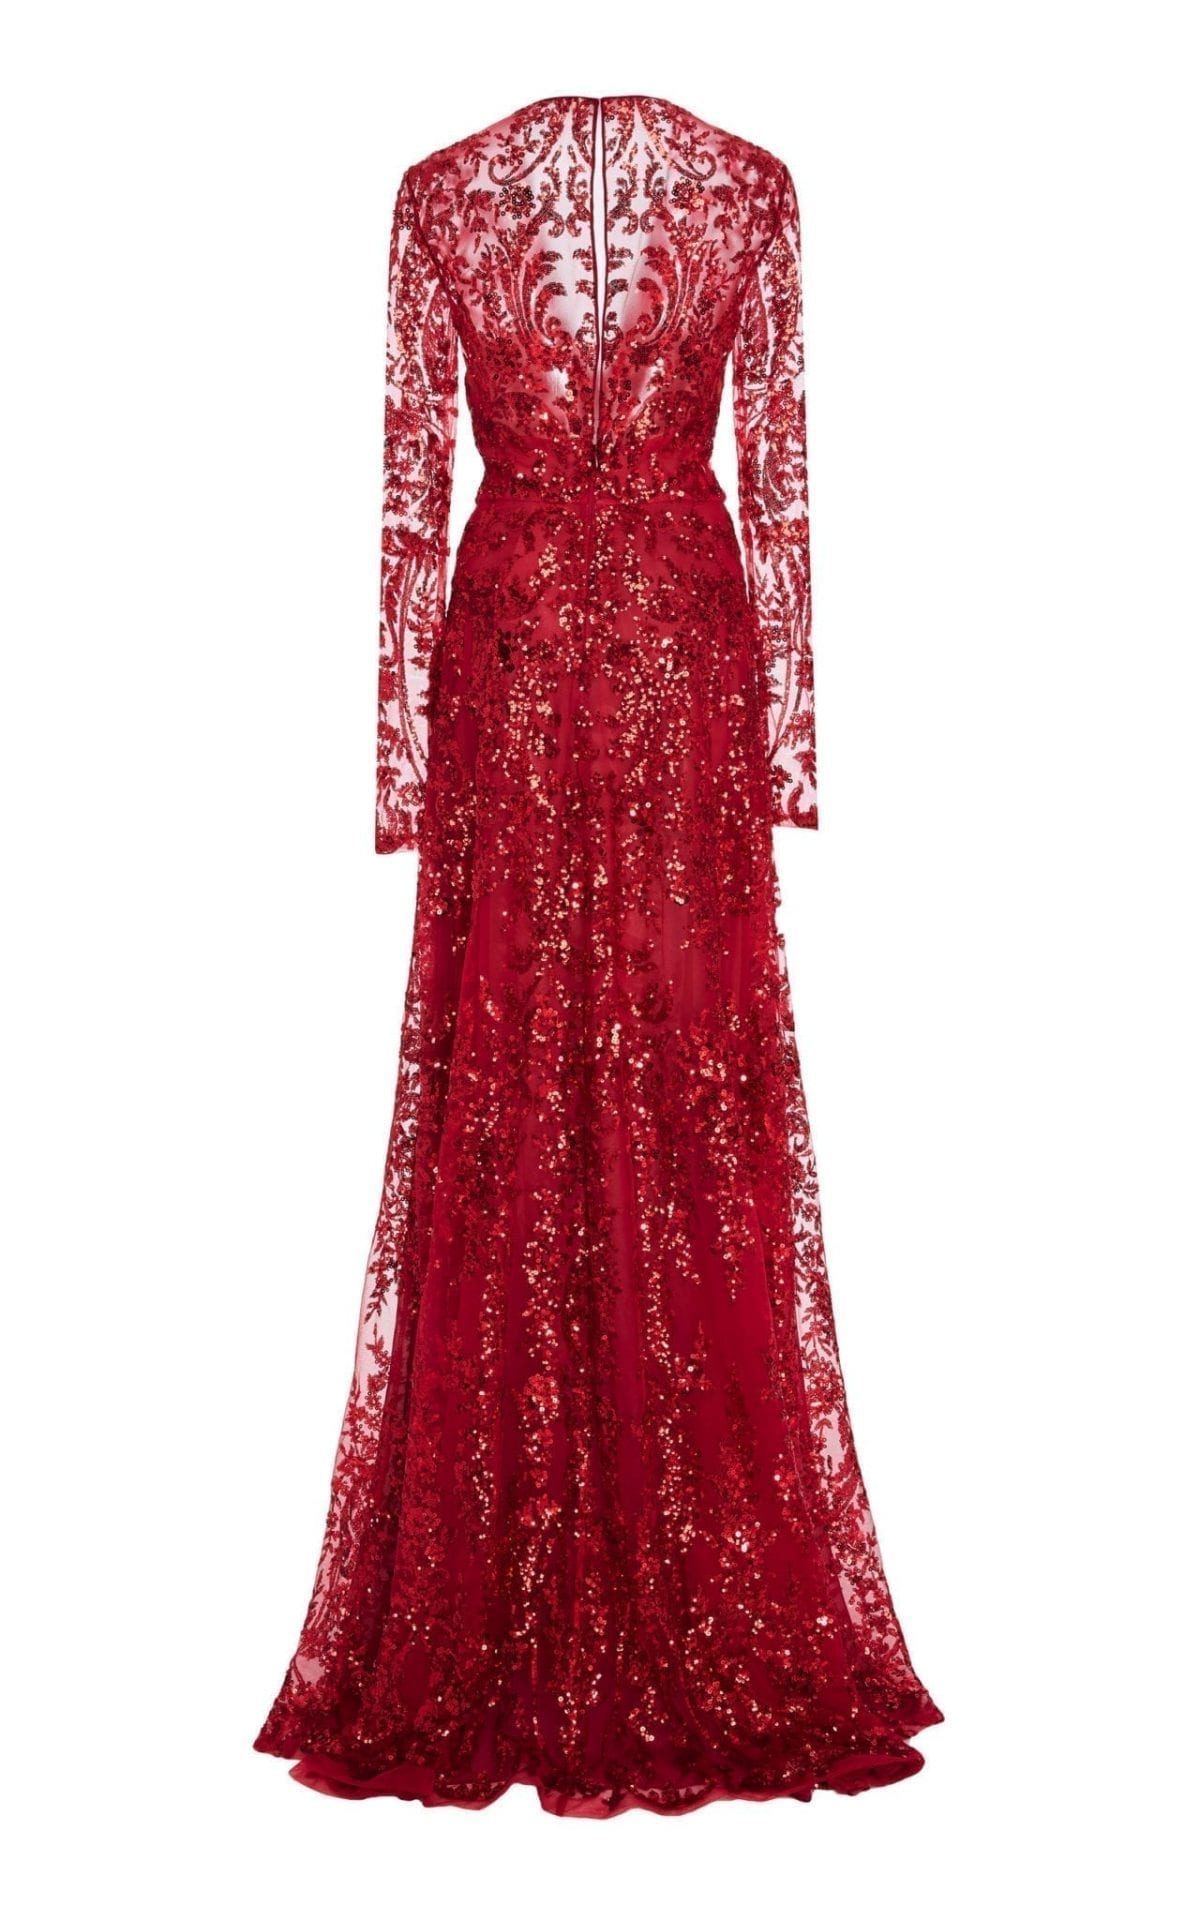 NAEEM KHAN Sequined Chiffon Red Gown 3